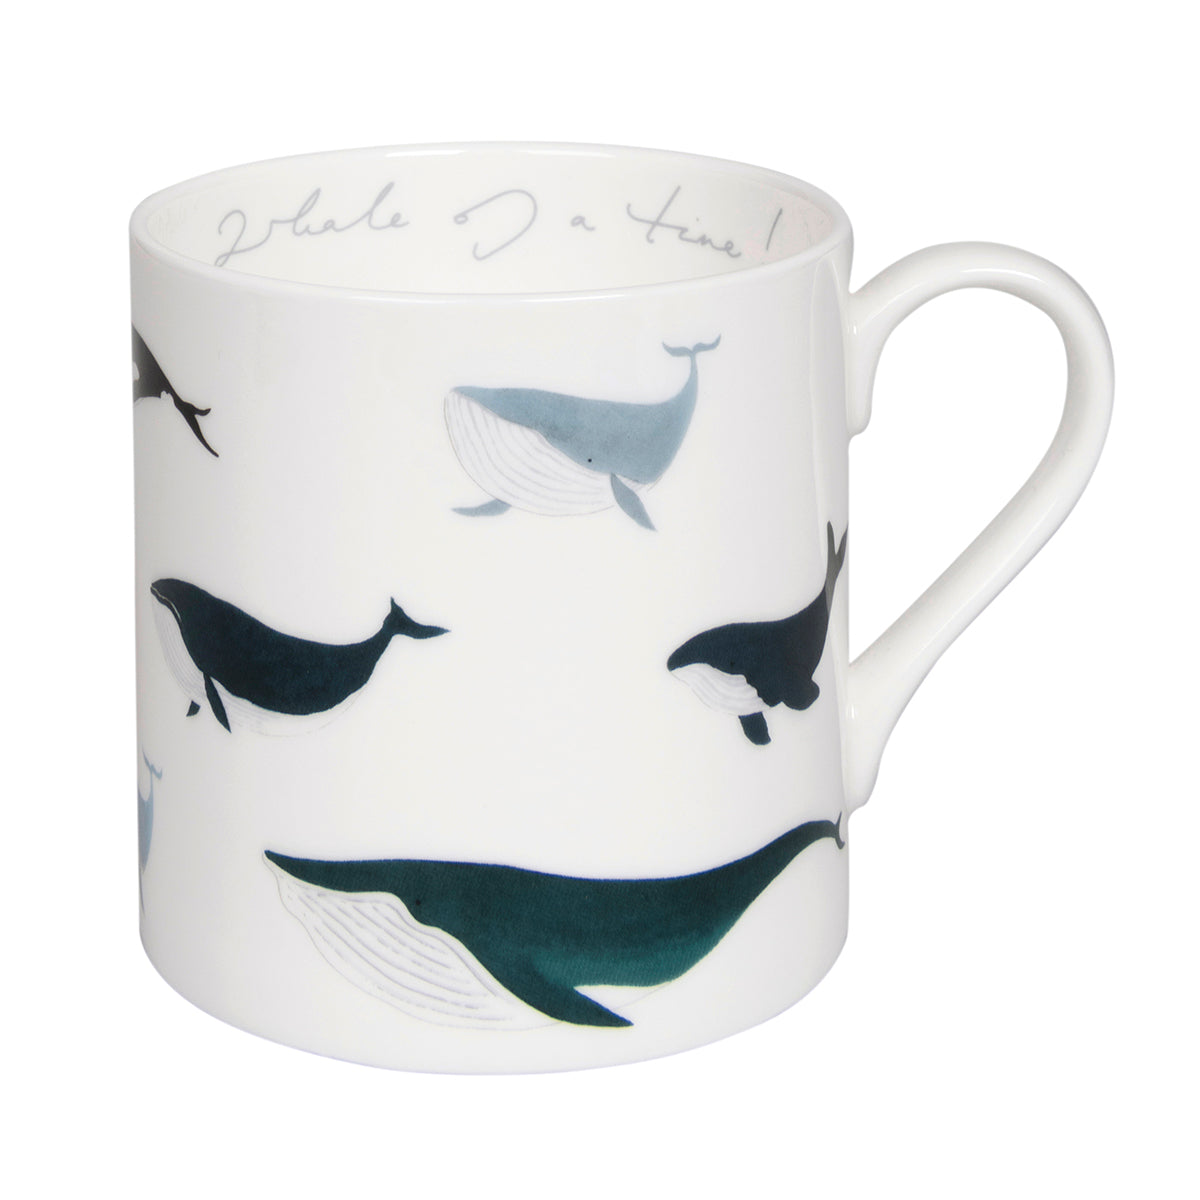 Fine bone china mug in Sophie Allport's Whales design